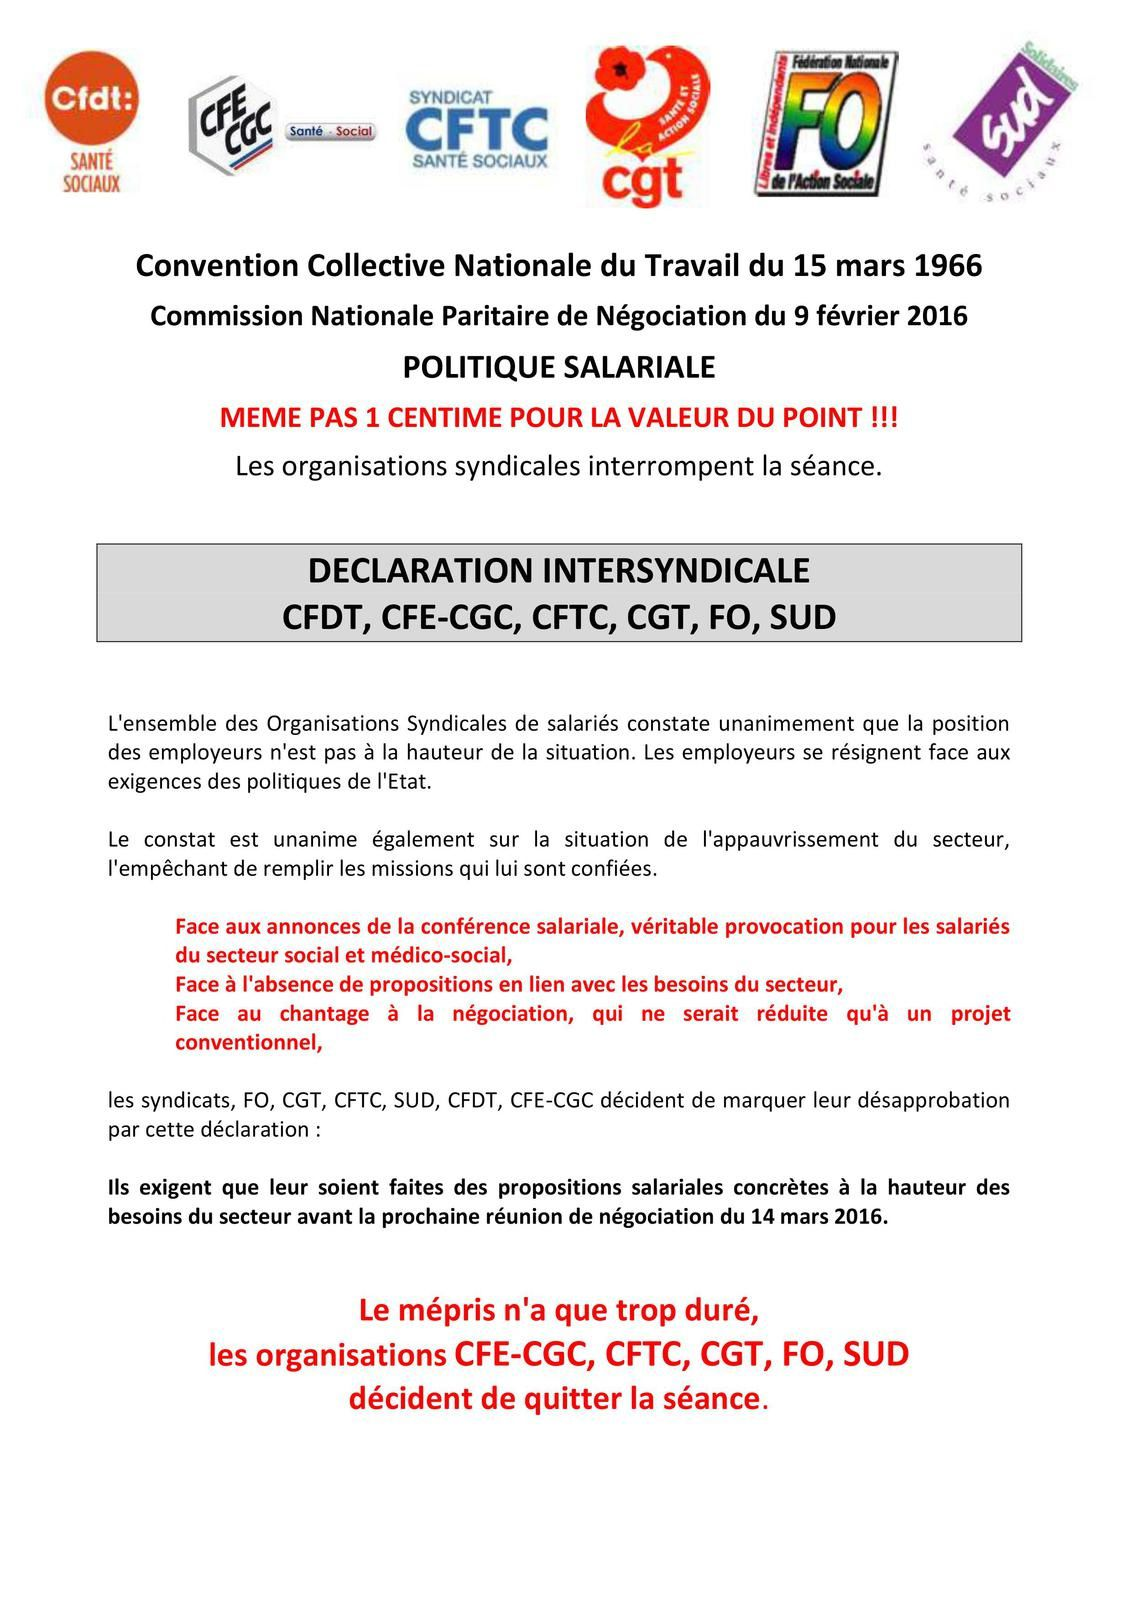 DÉCLARATION INTERSYNDICALE CFDT, CFE-CGC, CFTC, CGT, FO, SUD